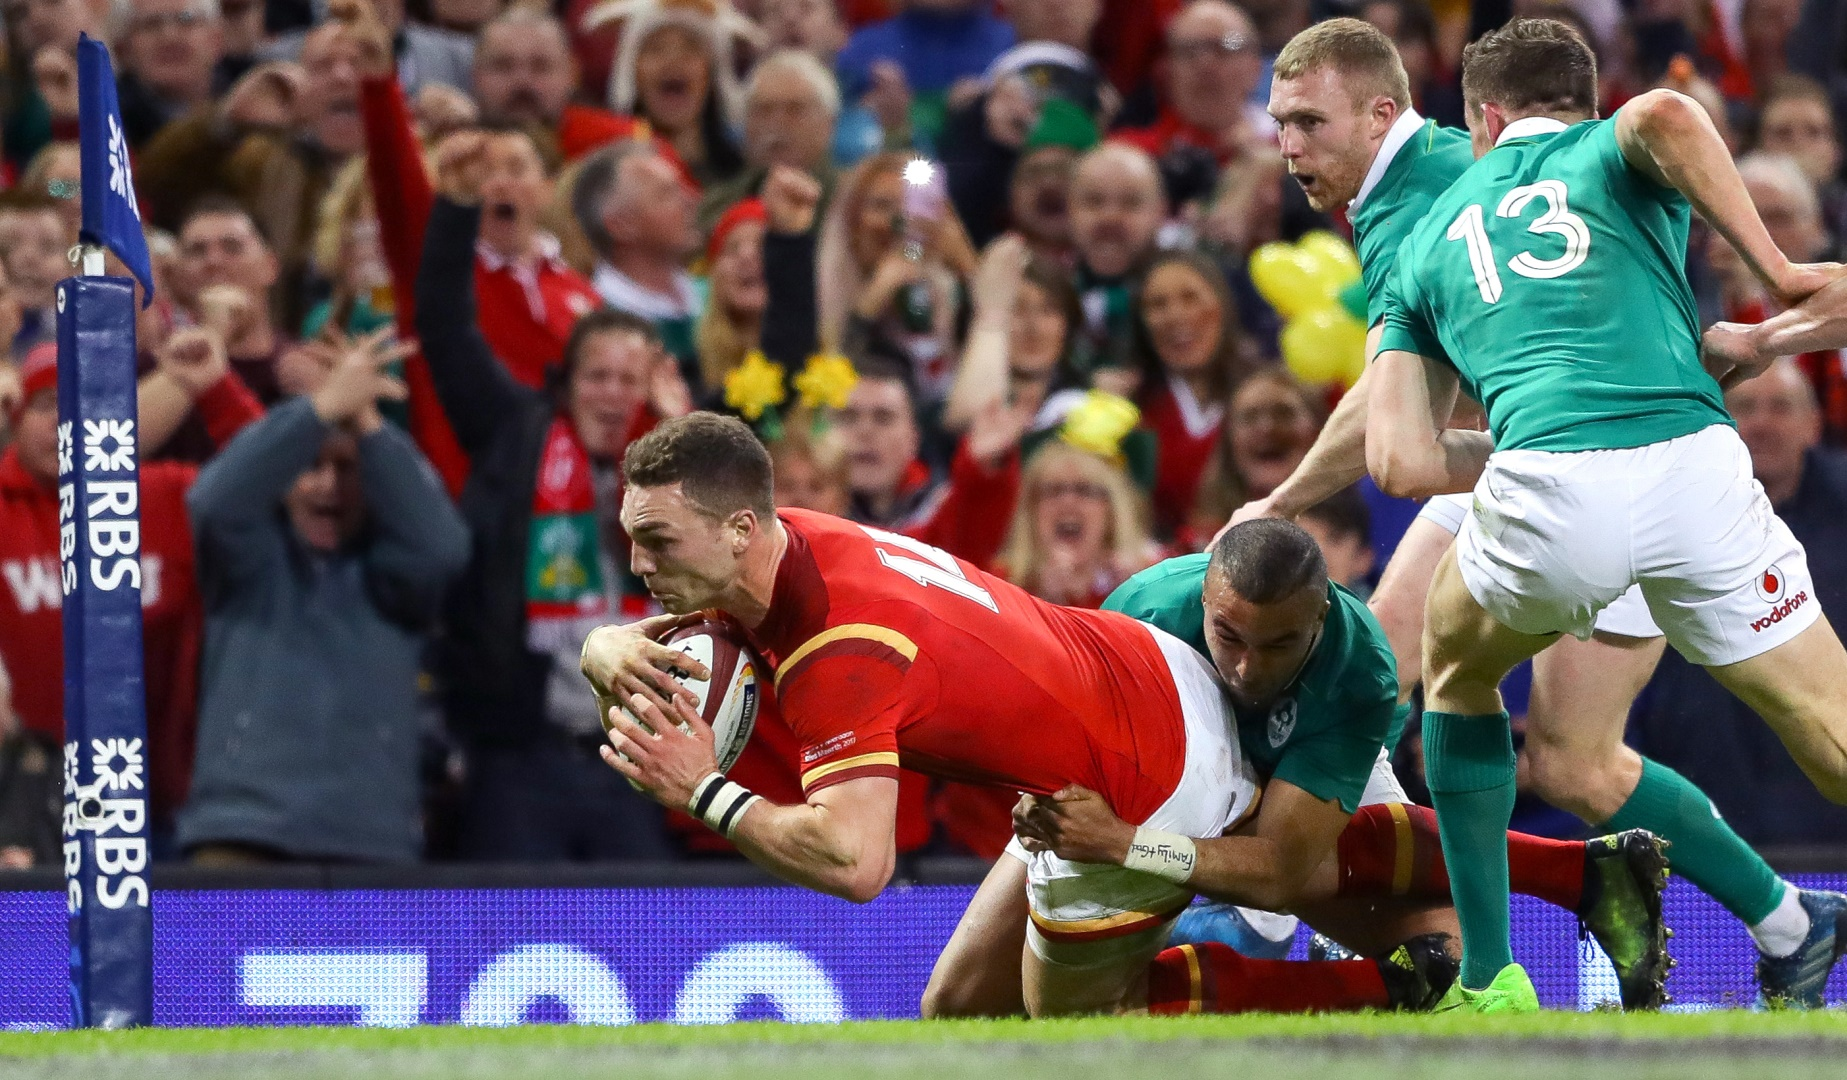 LionsWatch: North and Webb shine as Wales down Ireland